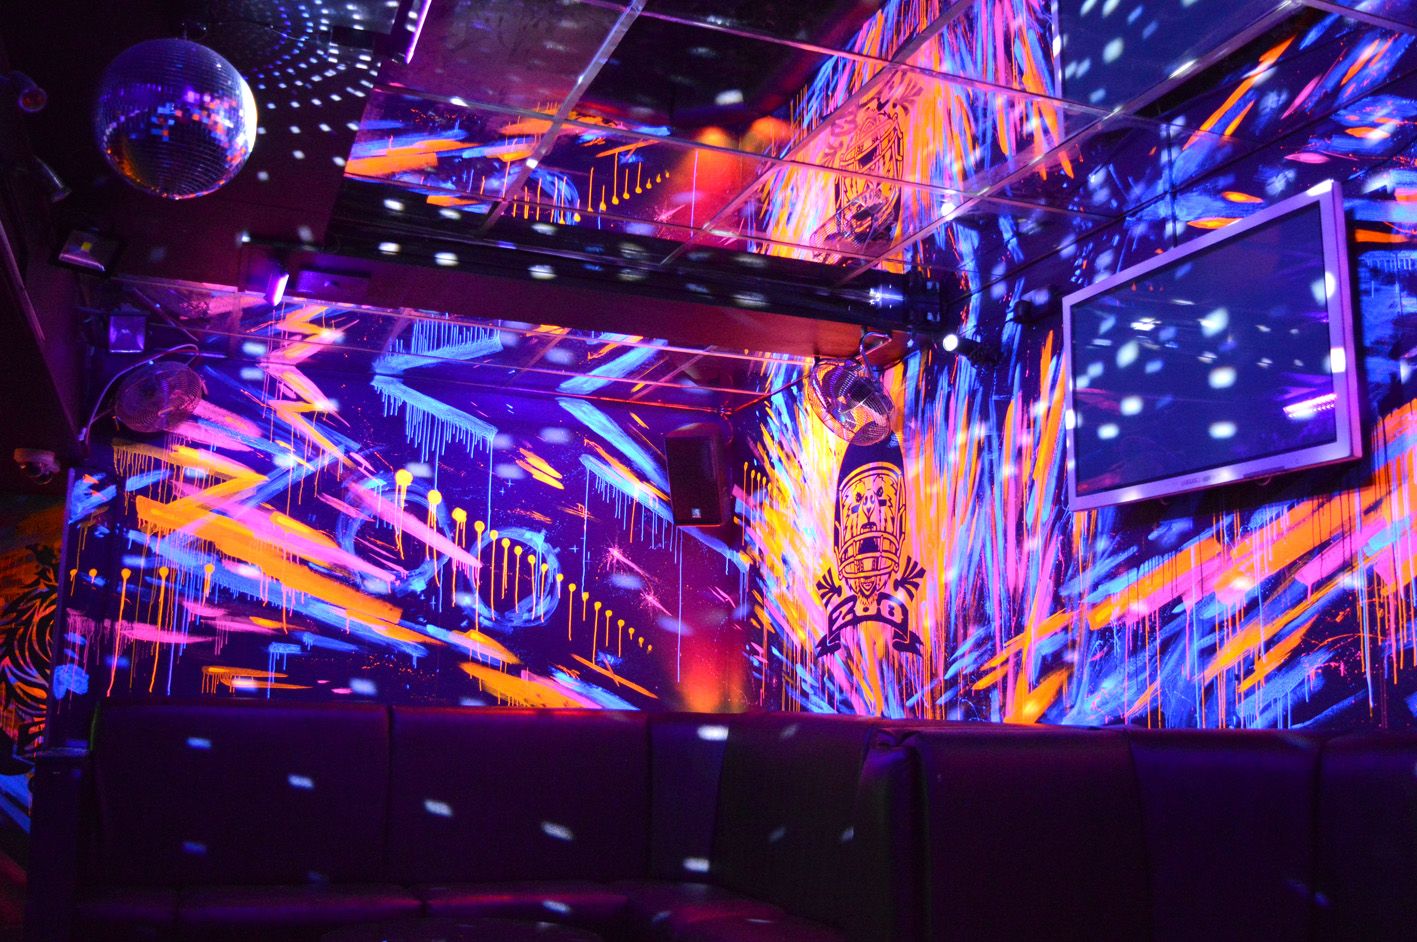 Zoo_UV-Mural-nightclub-12